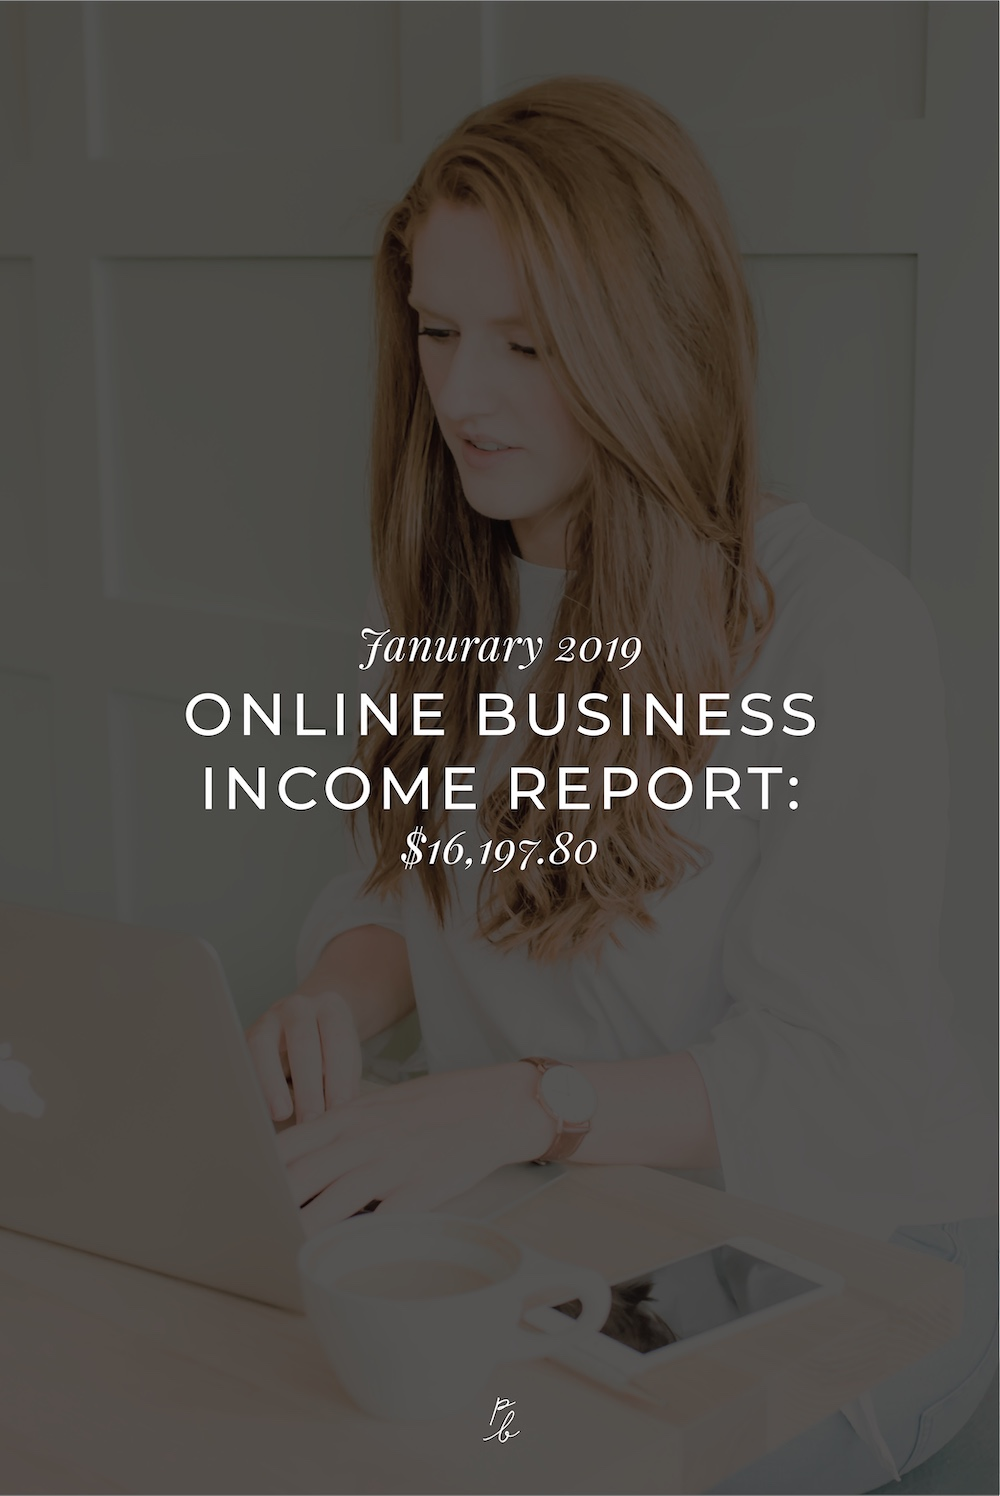 January 2019 online business income report.jpg